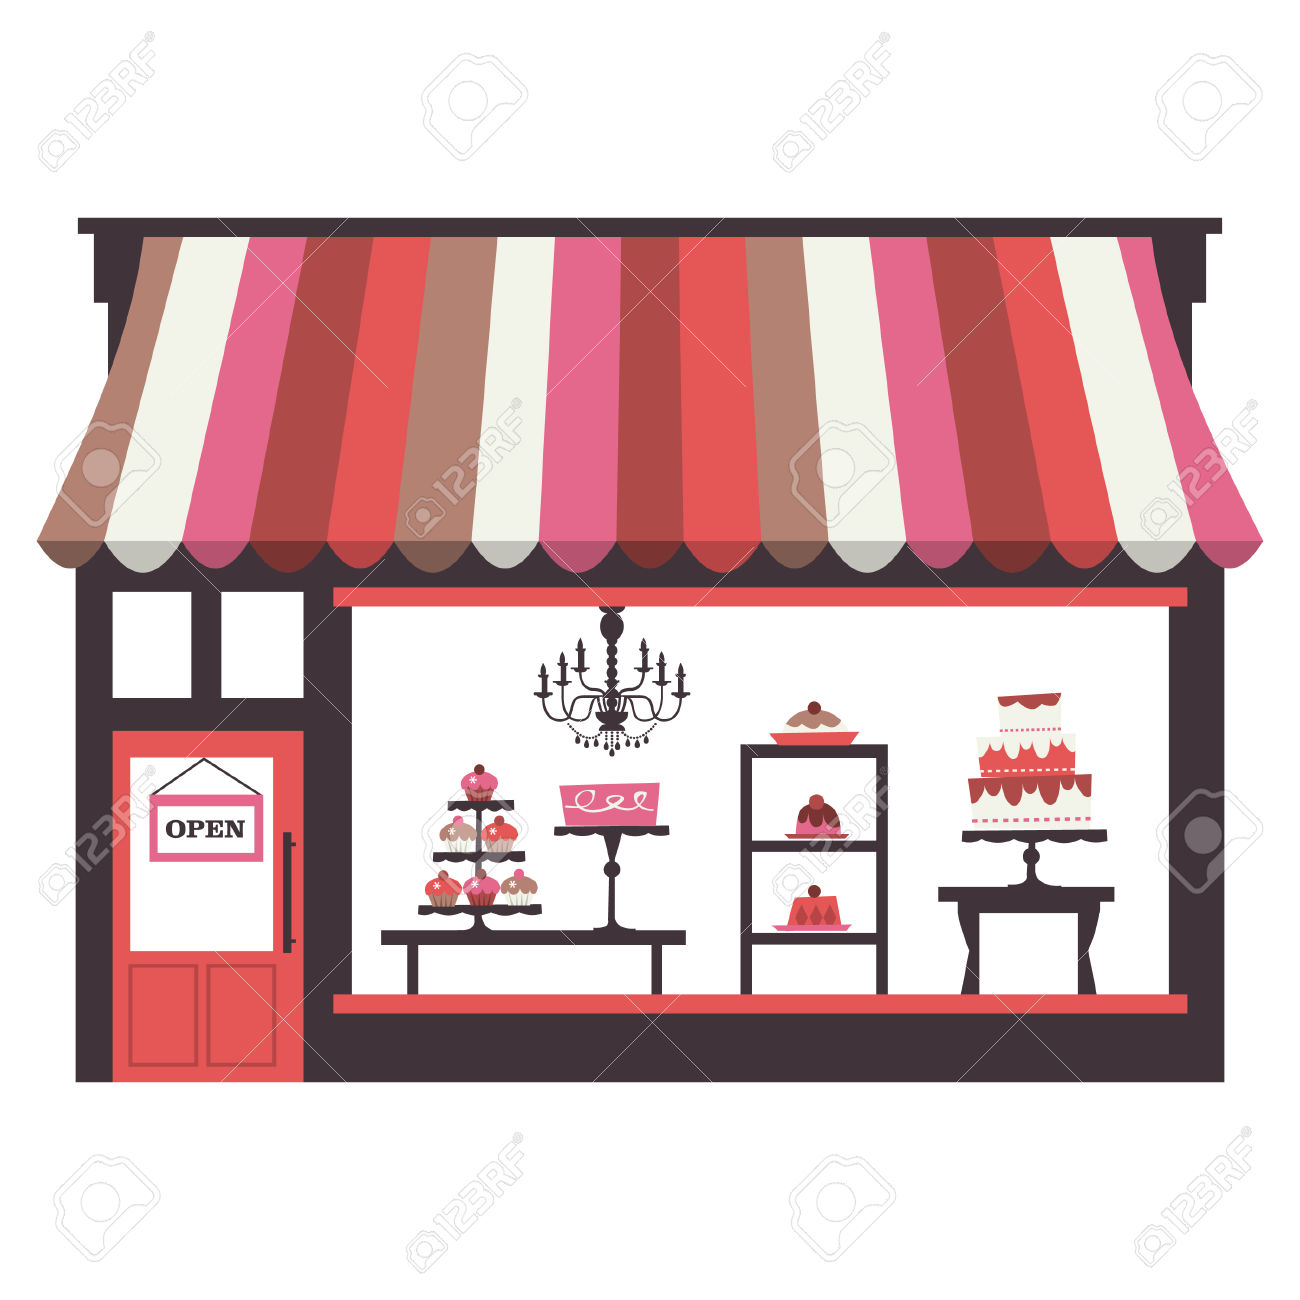 892 Shopfront Cliparts, Stock Vector And Royalty Free Shopfront.